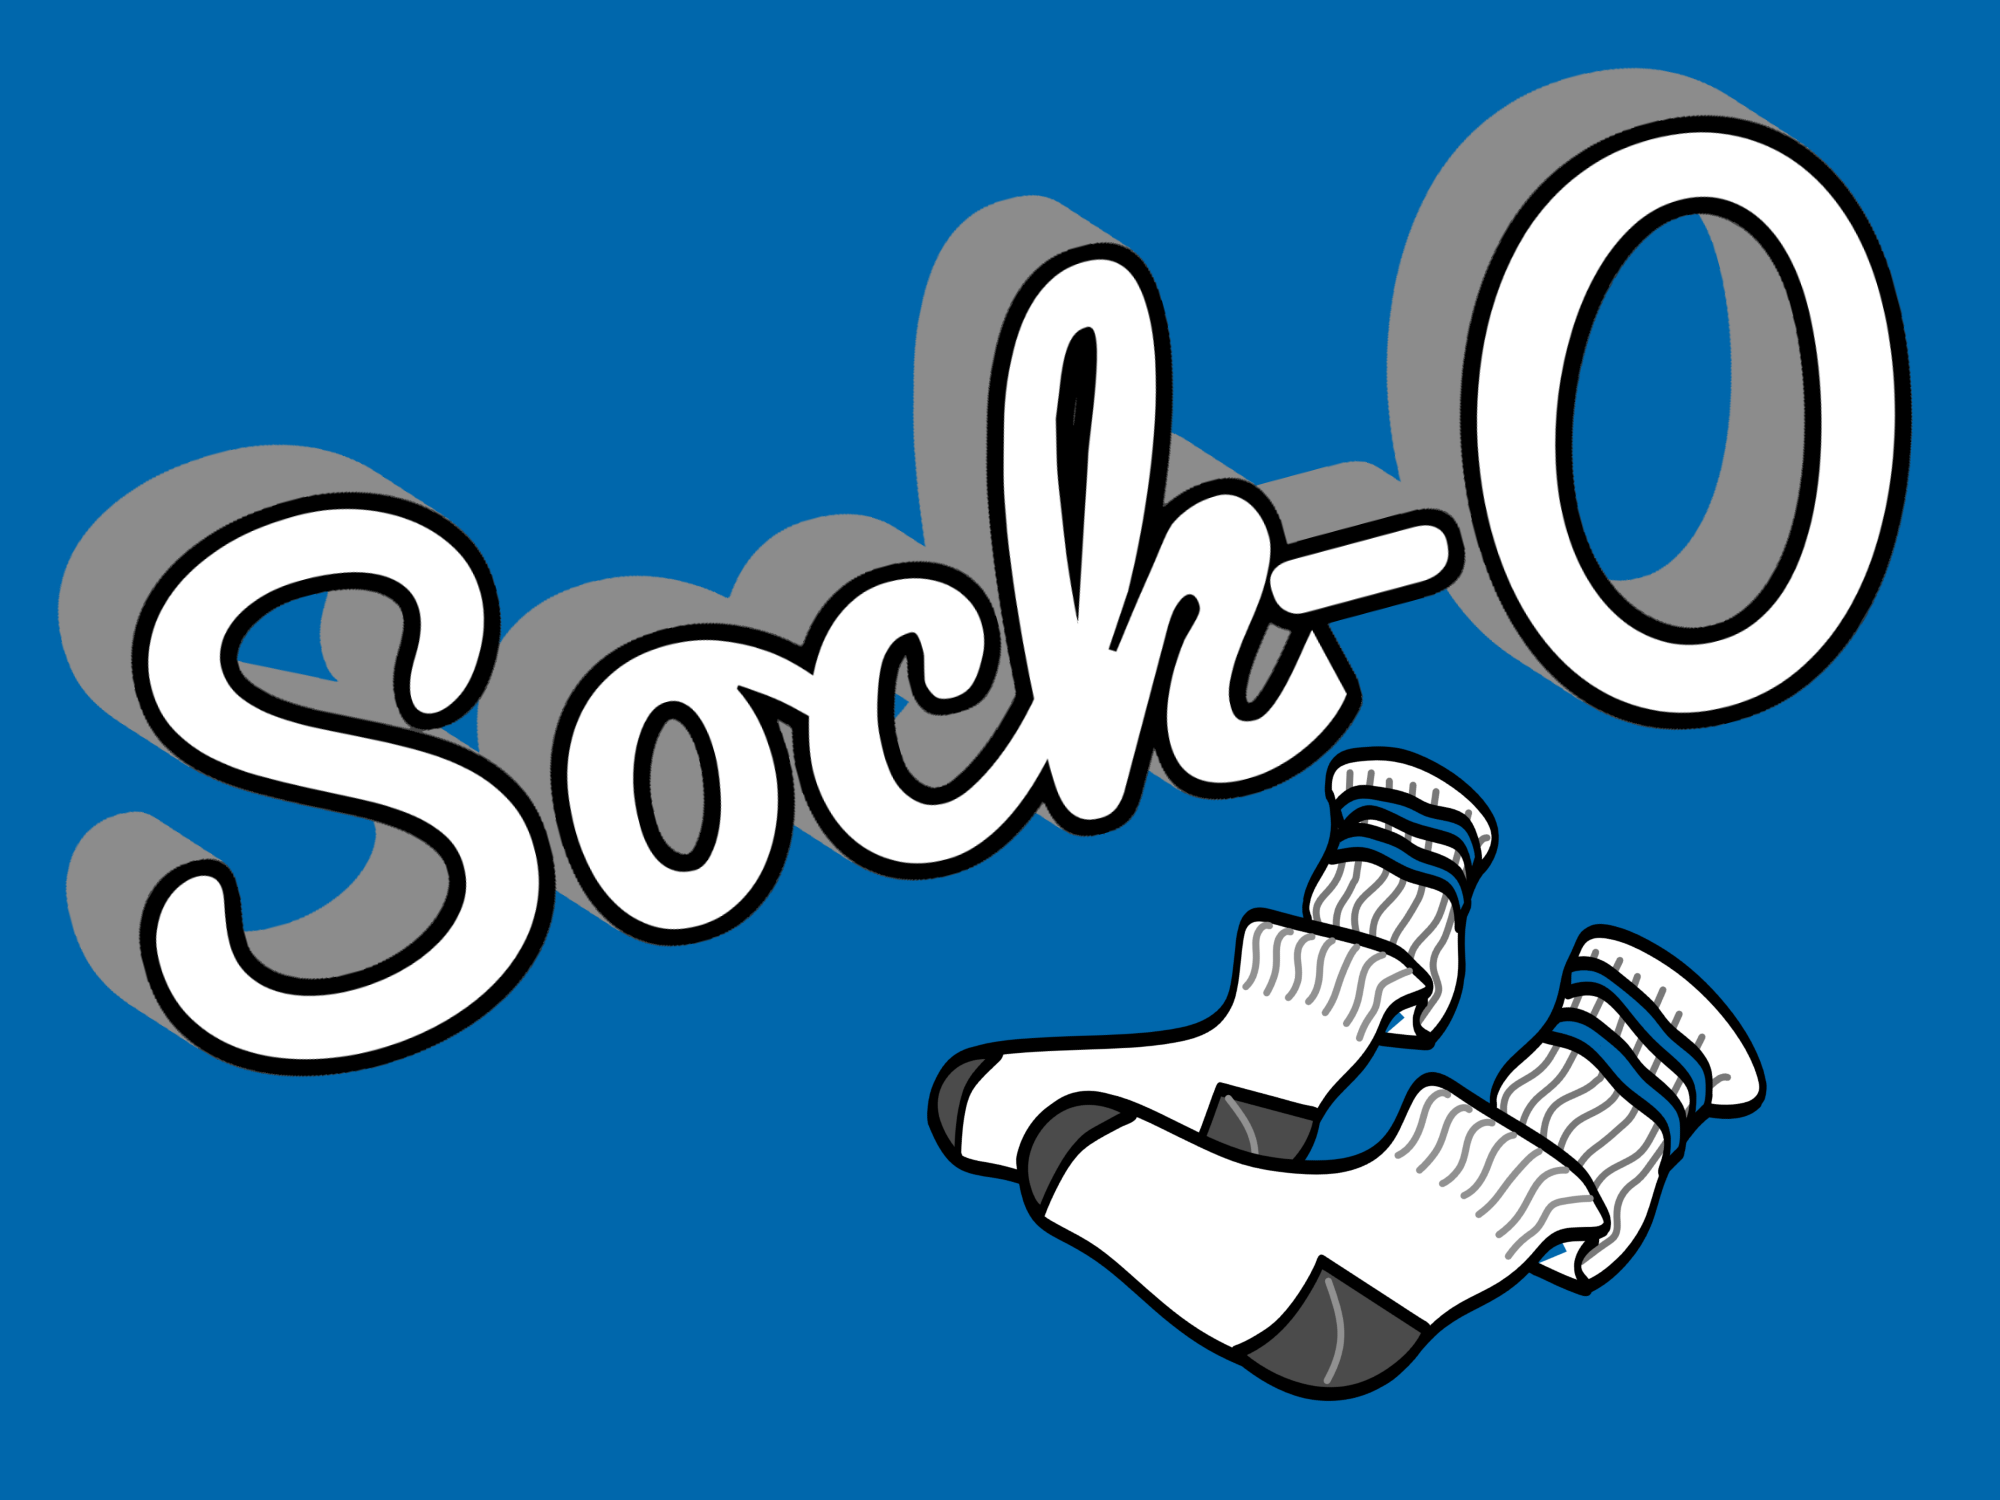 Socko Sock-o Youth Group Collective SD Games